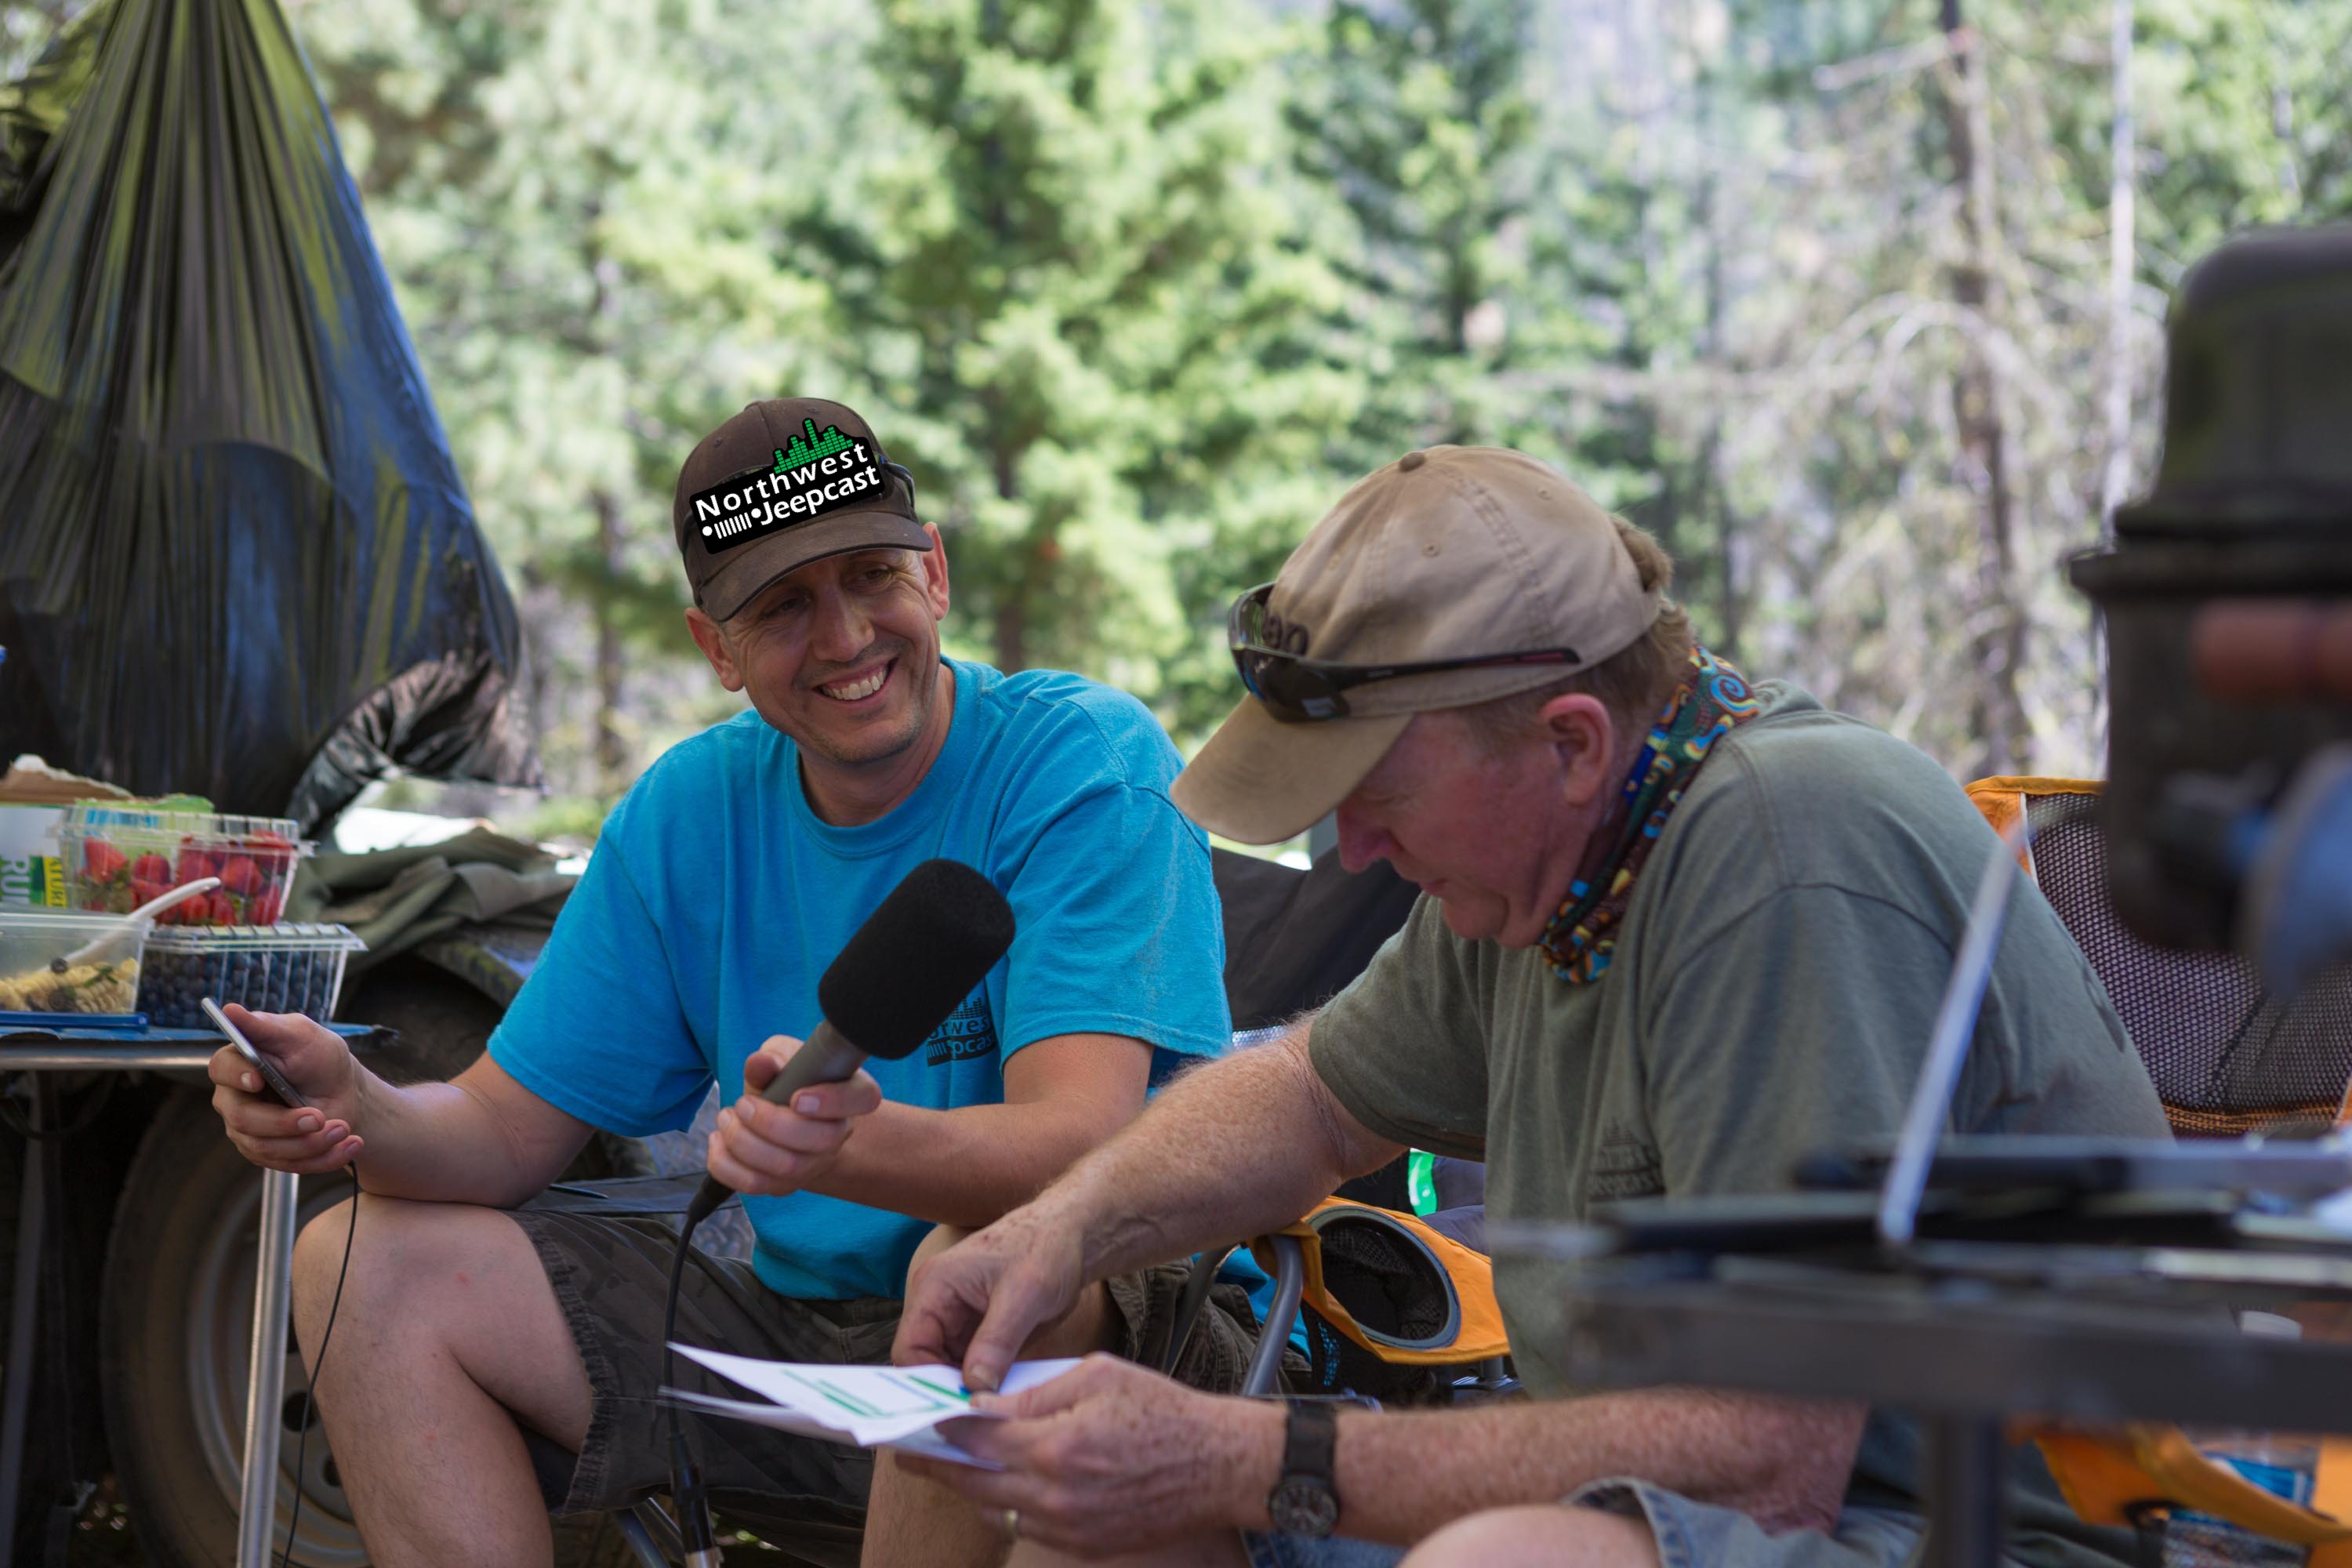 Northwest Jeepcast - Podcasting Live